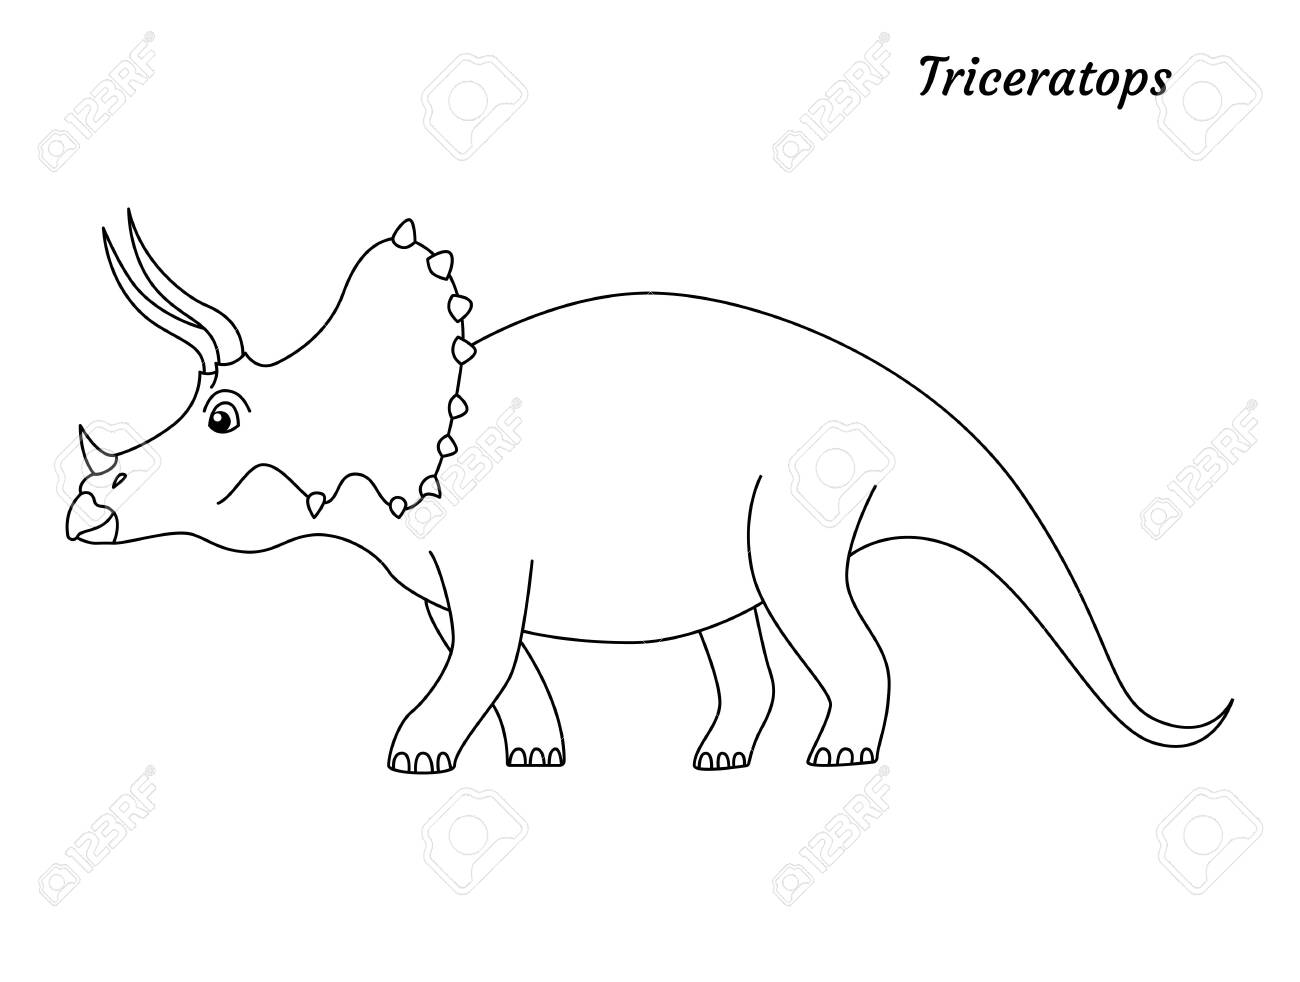 Coloring Page Outline Triceratops Dinosaur Vector Illustration Royalty Free Cliparts Vectors And Stock Illustration Image 143409636